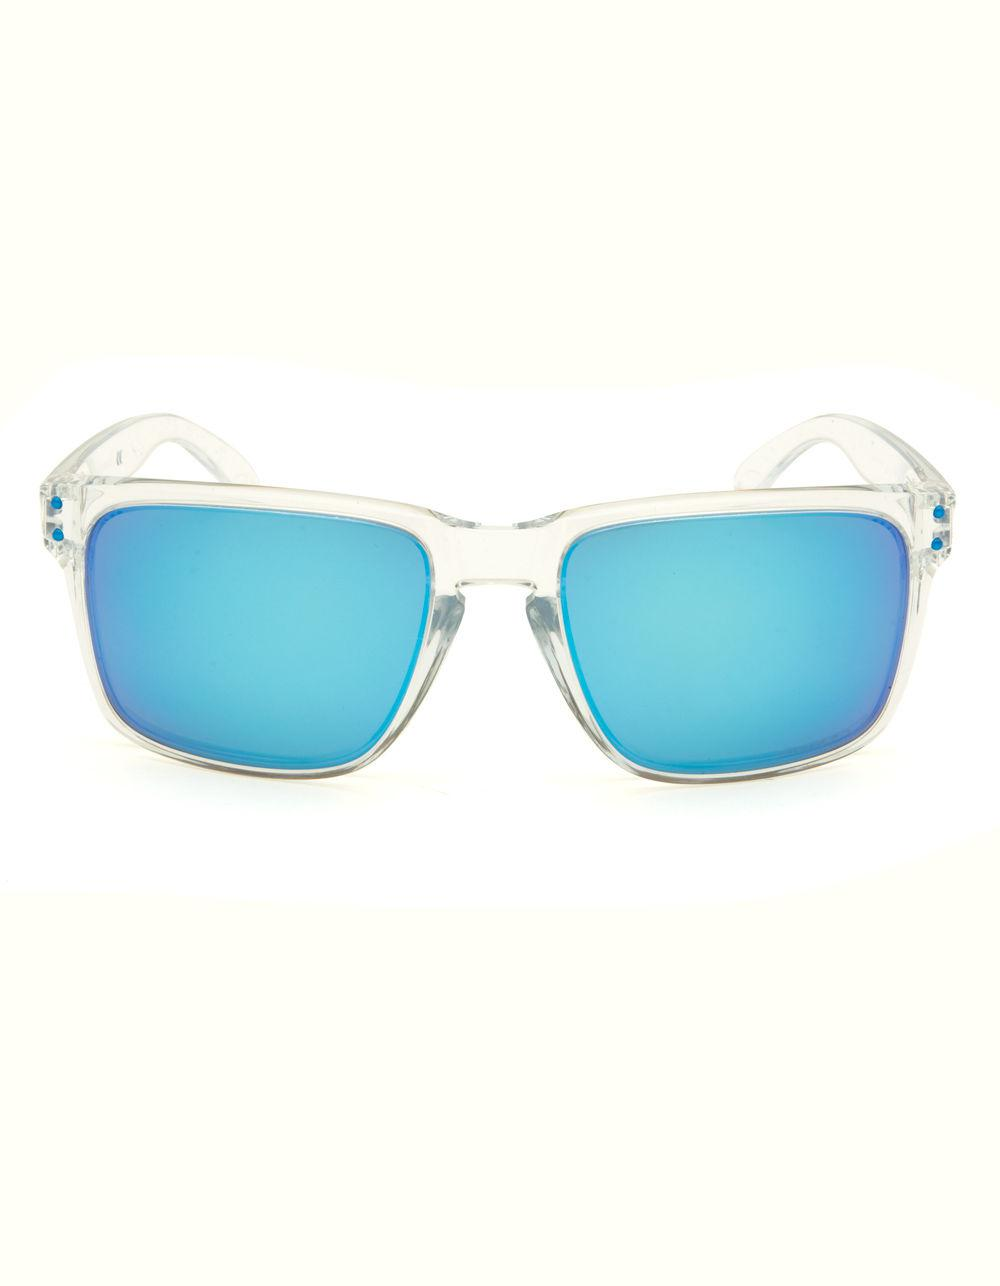 98b62d508f Lyst - Oakley Holbrook Xl Clear   Blue Sunglasses in Blue for Men